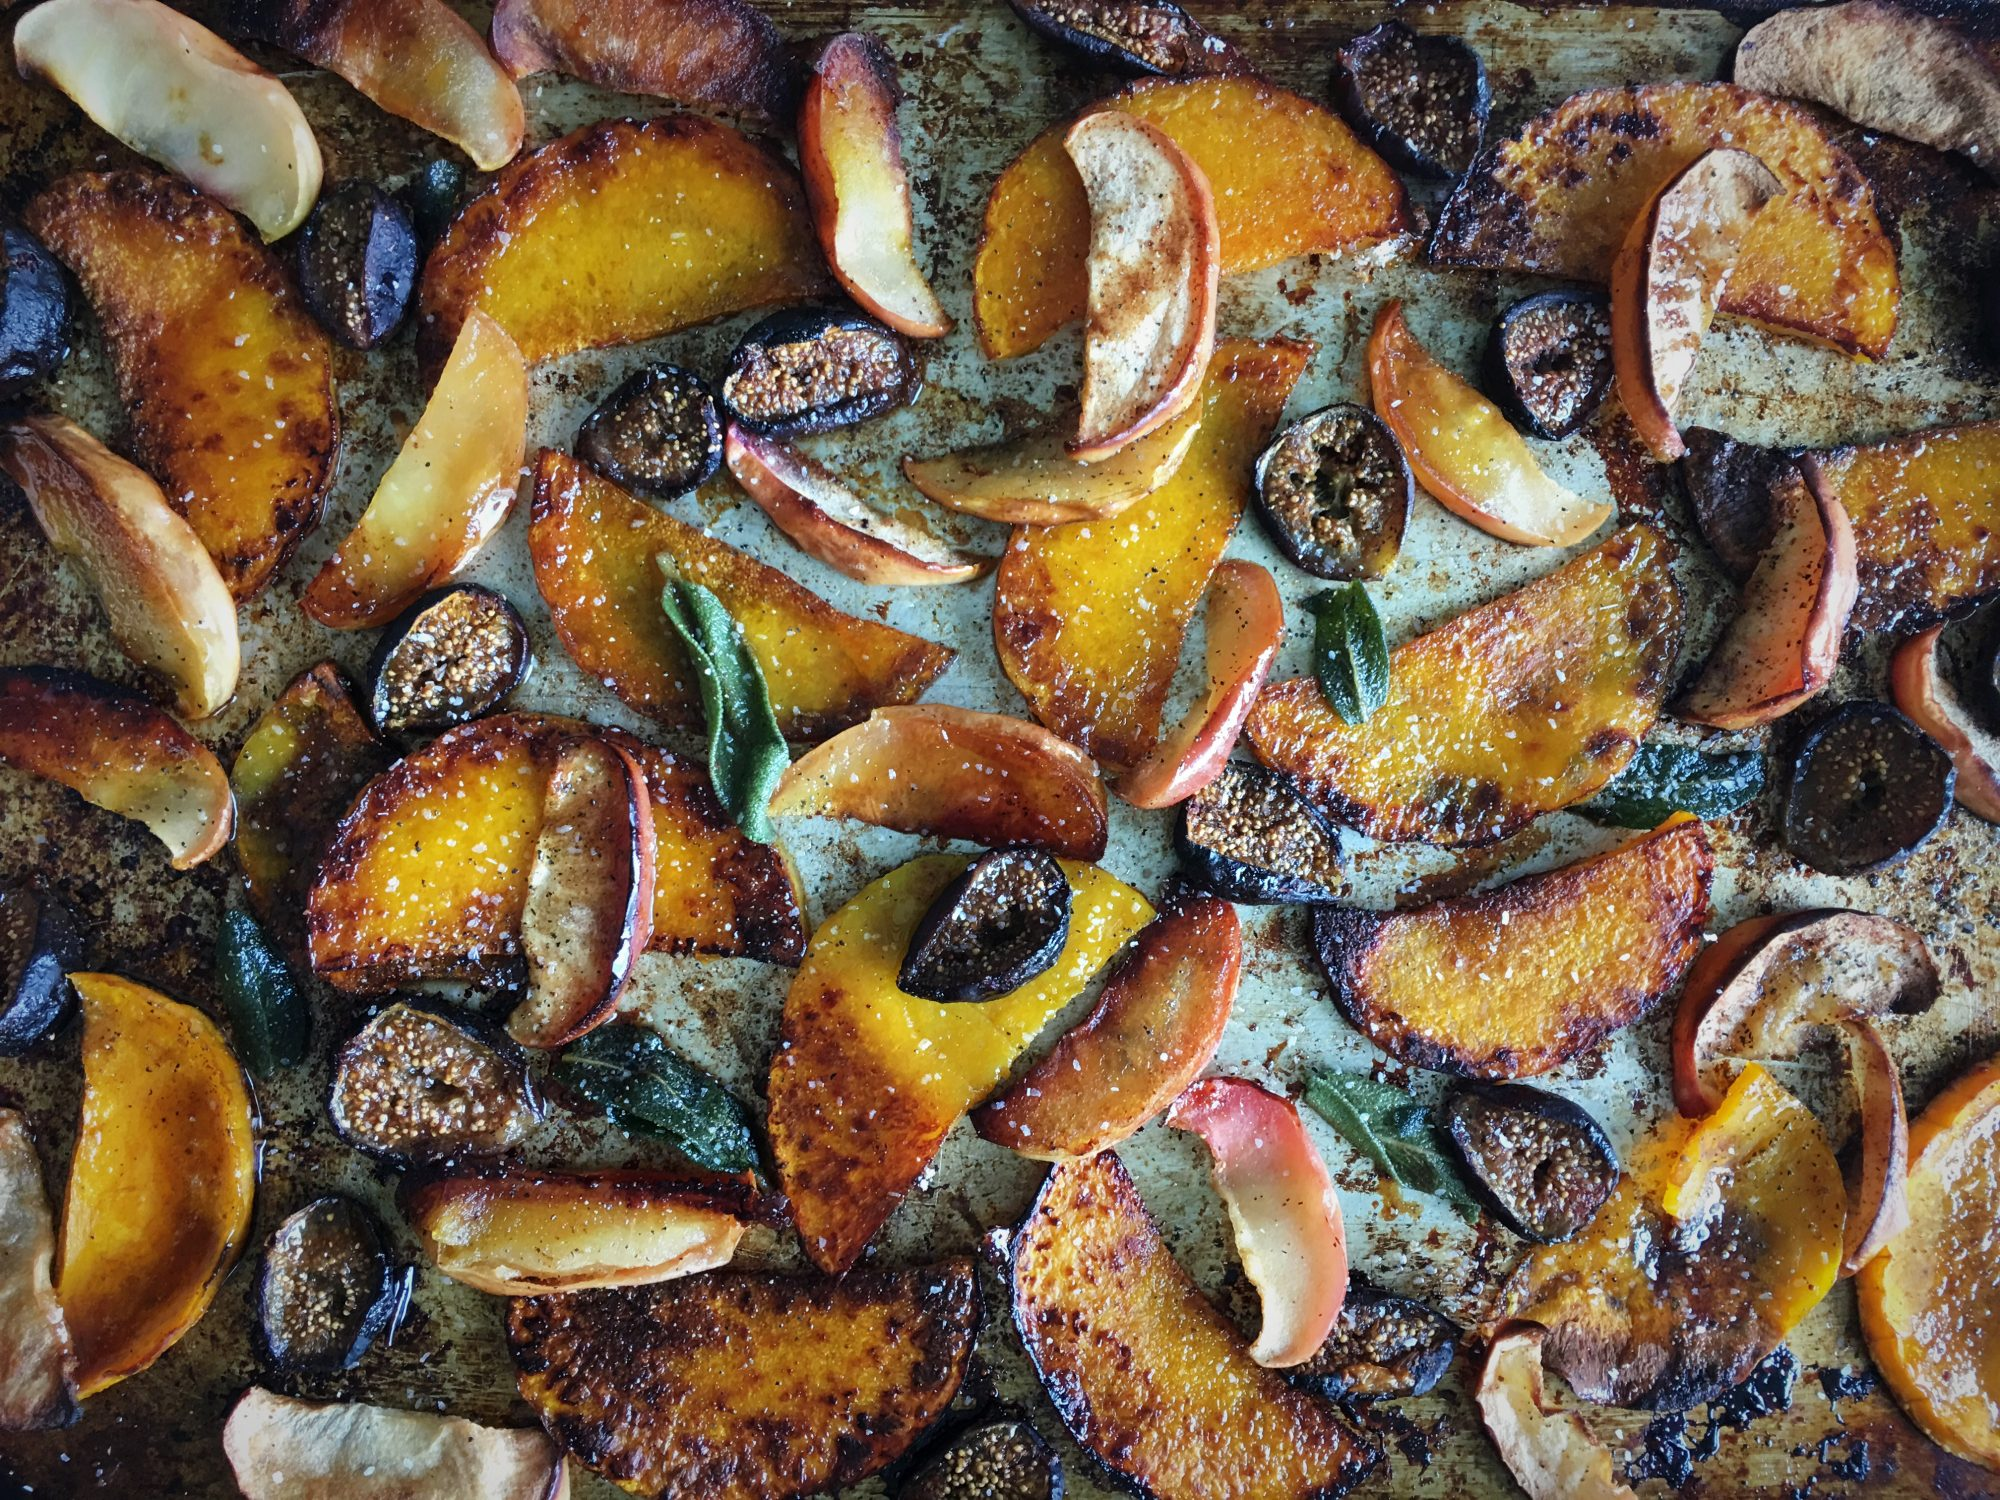 Roasted Butternut Squash, Figs, and Apples with Sage Brown Butter